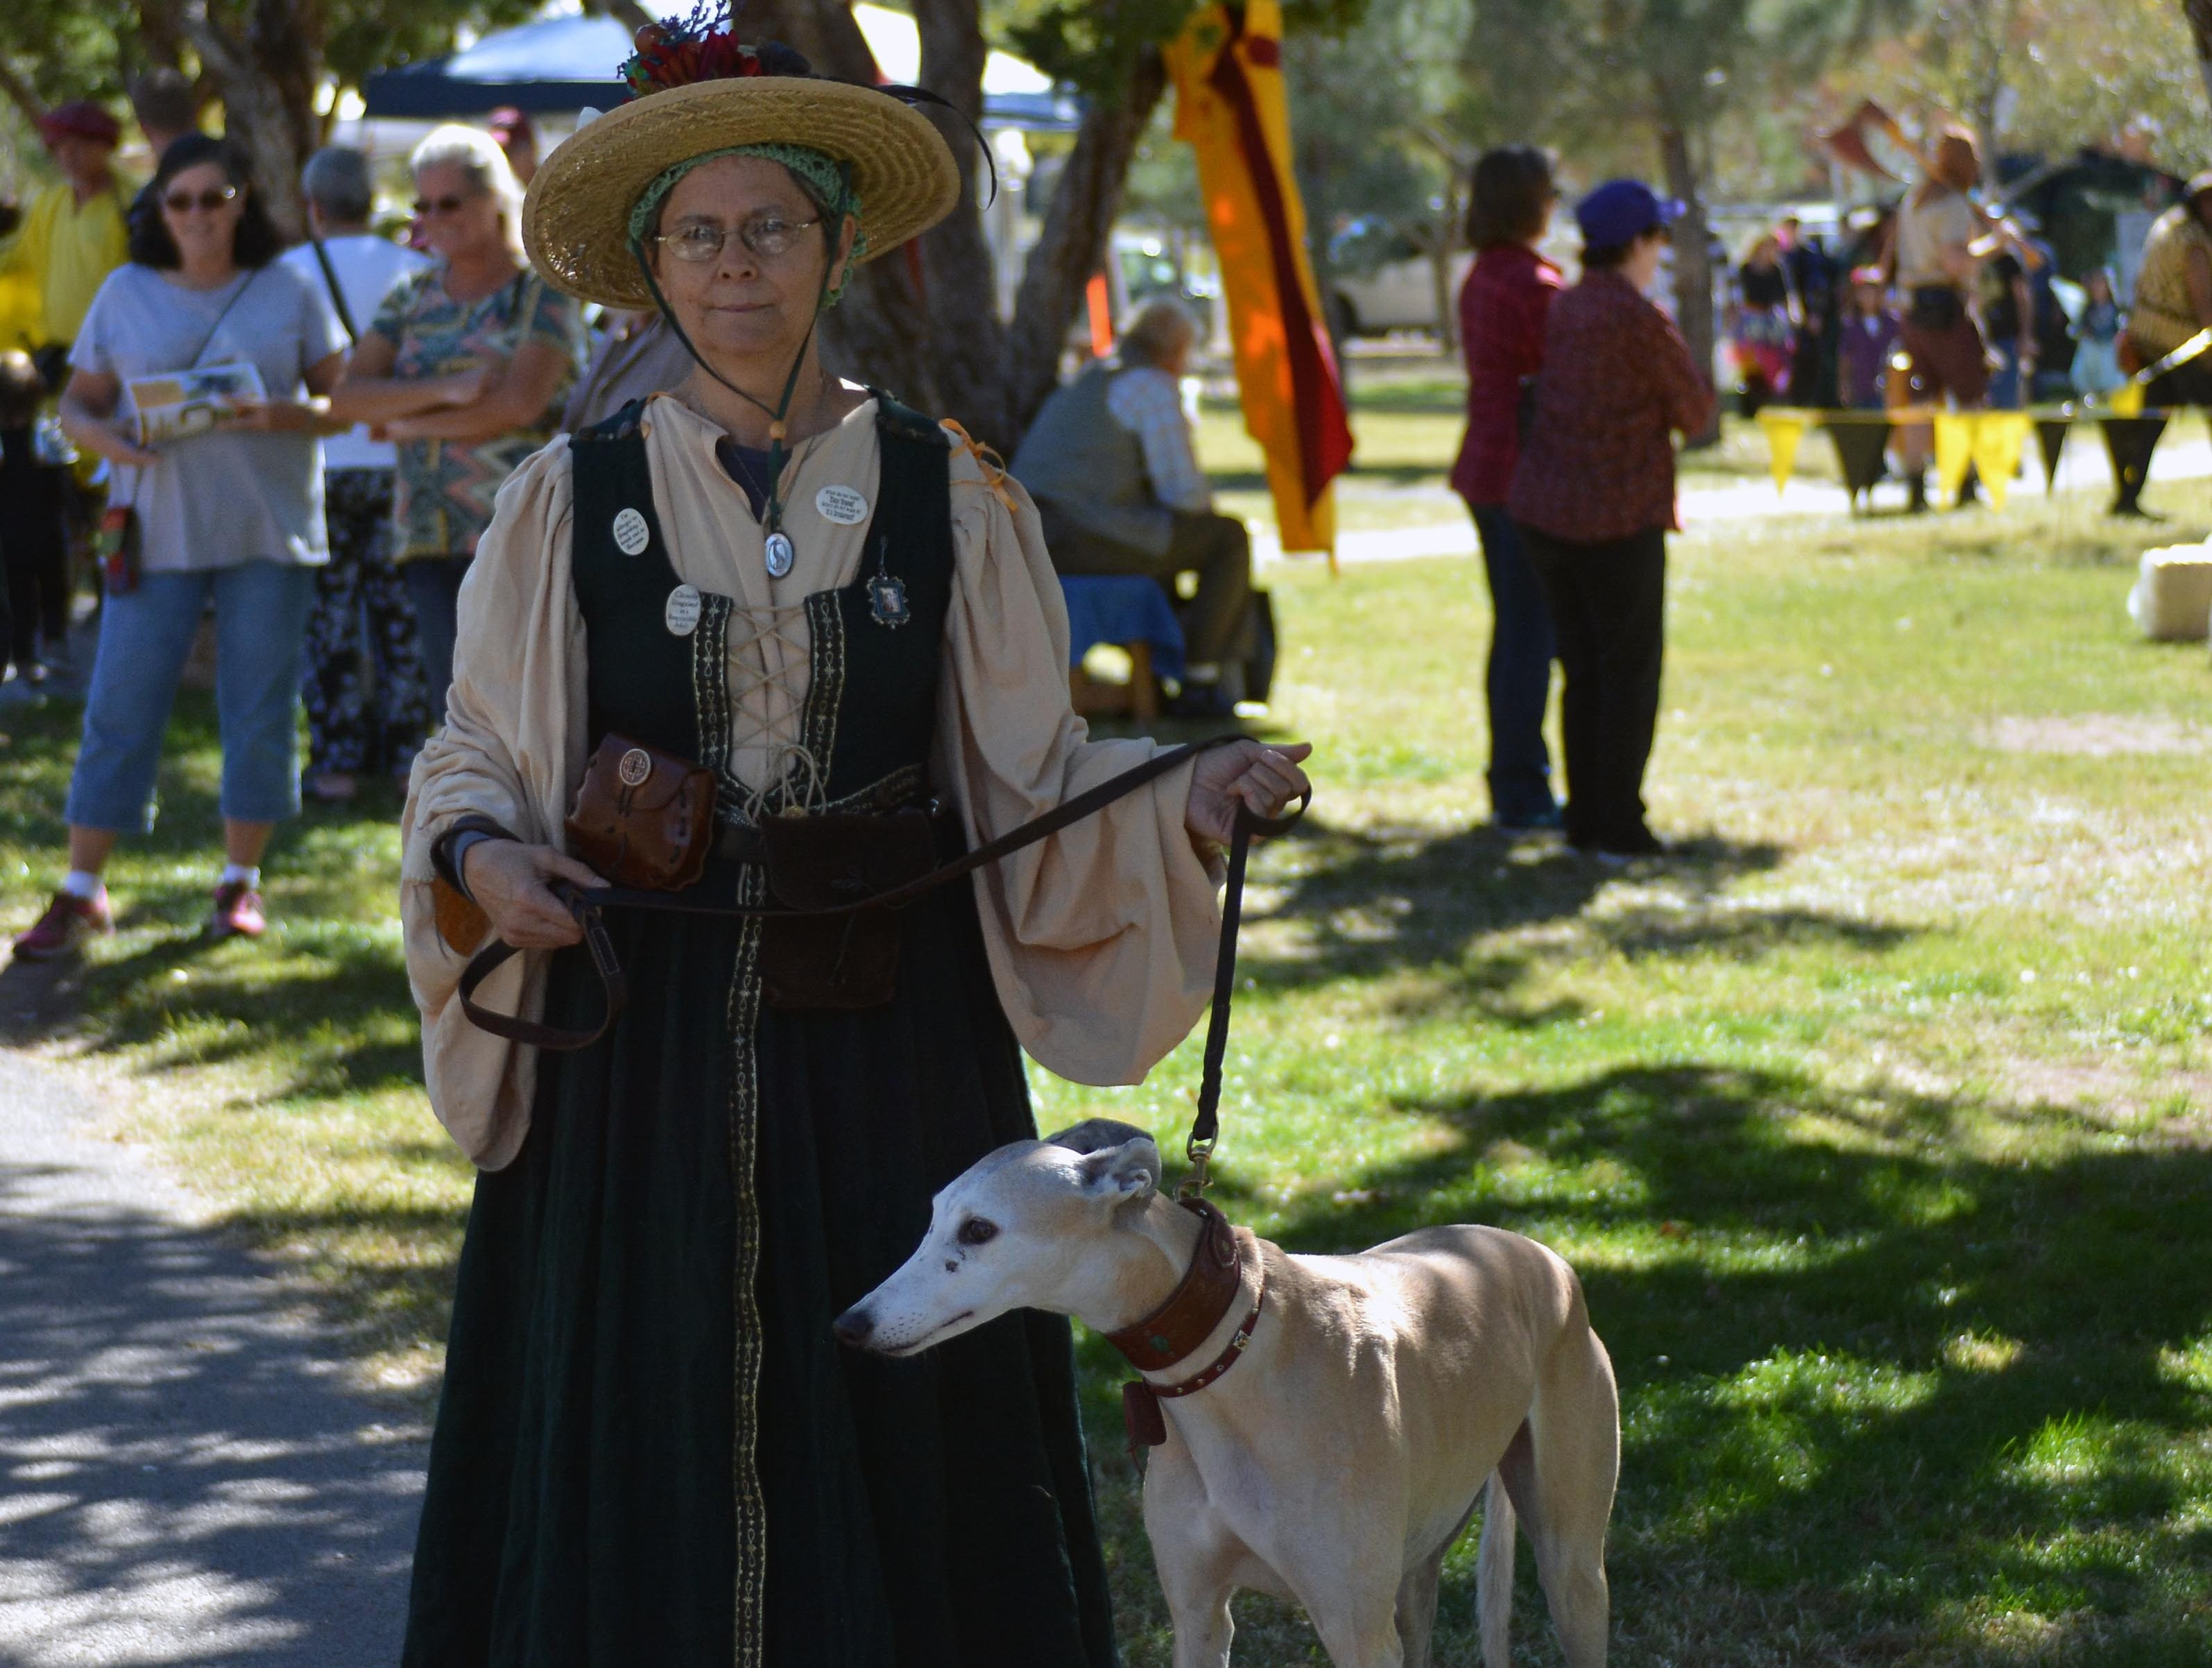 Visitors at the Faire enjoy dressing up in their favorite costumes. Photo taken 11/3/18.